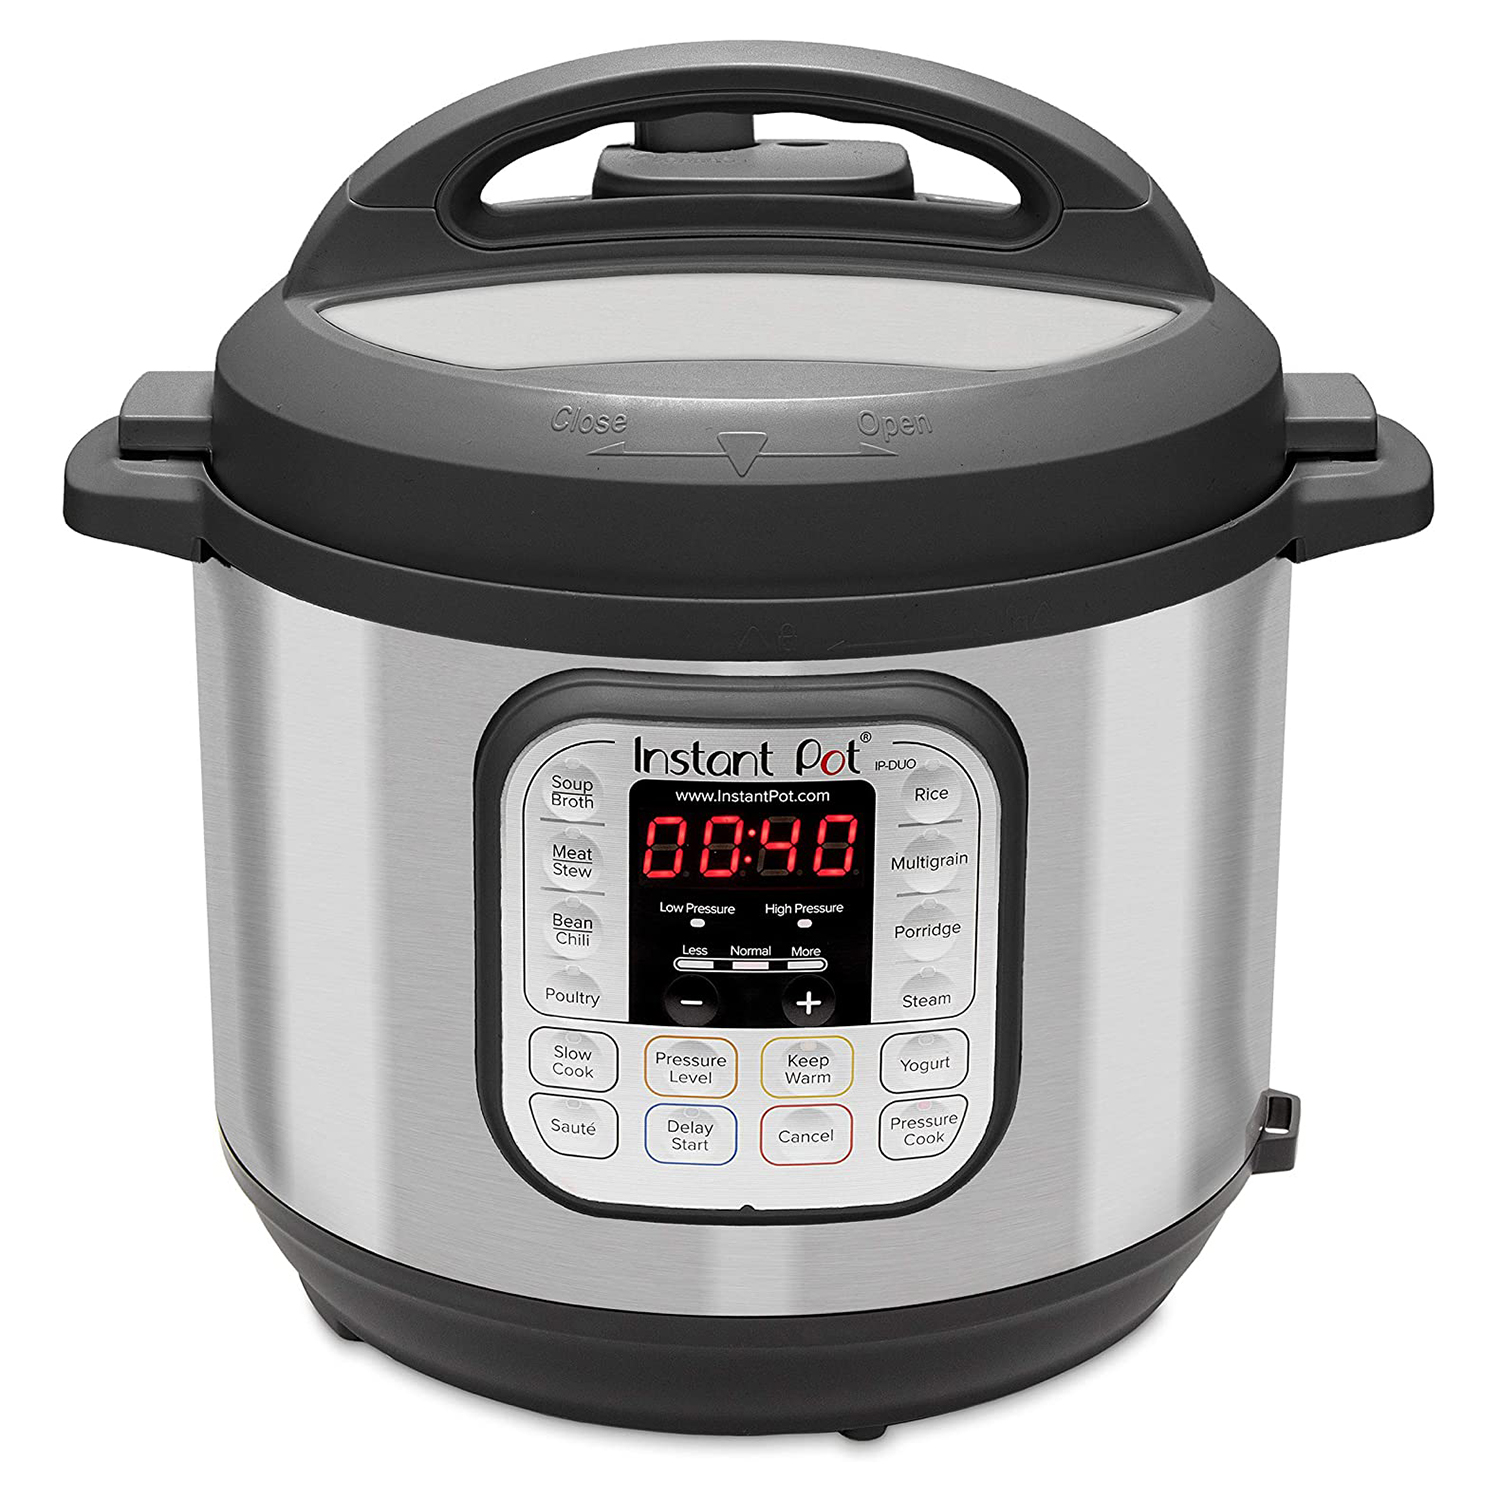 Instant Pot Air Fryer on Amazon